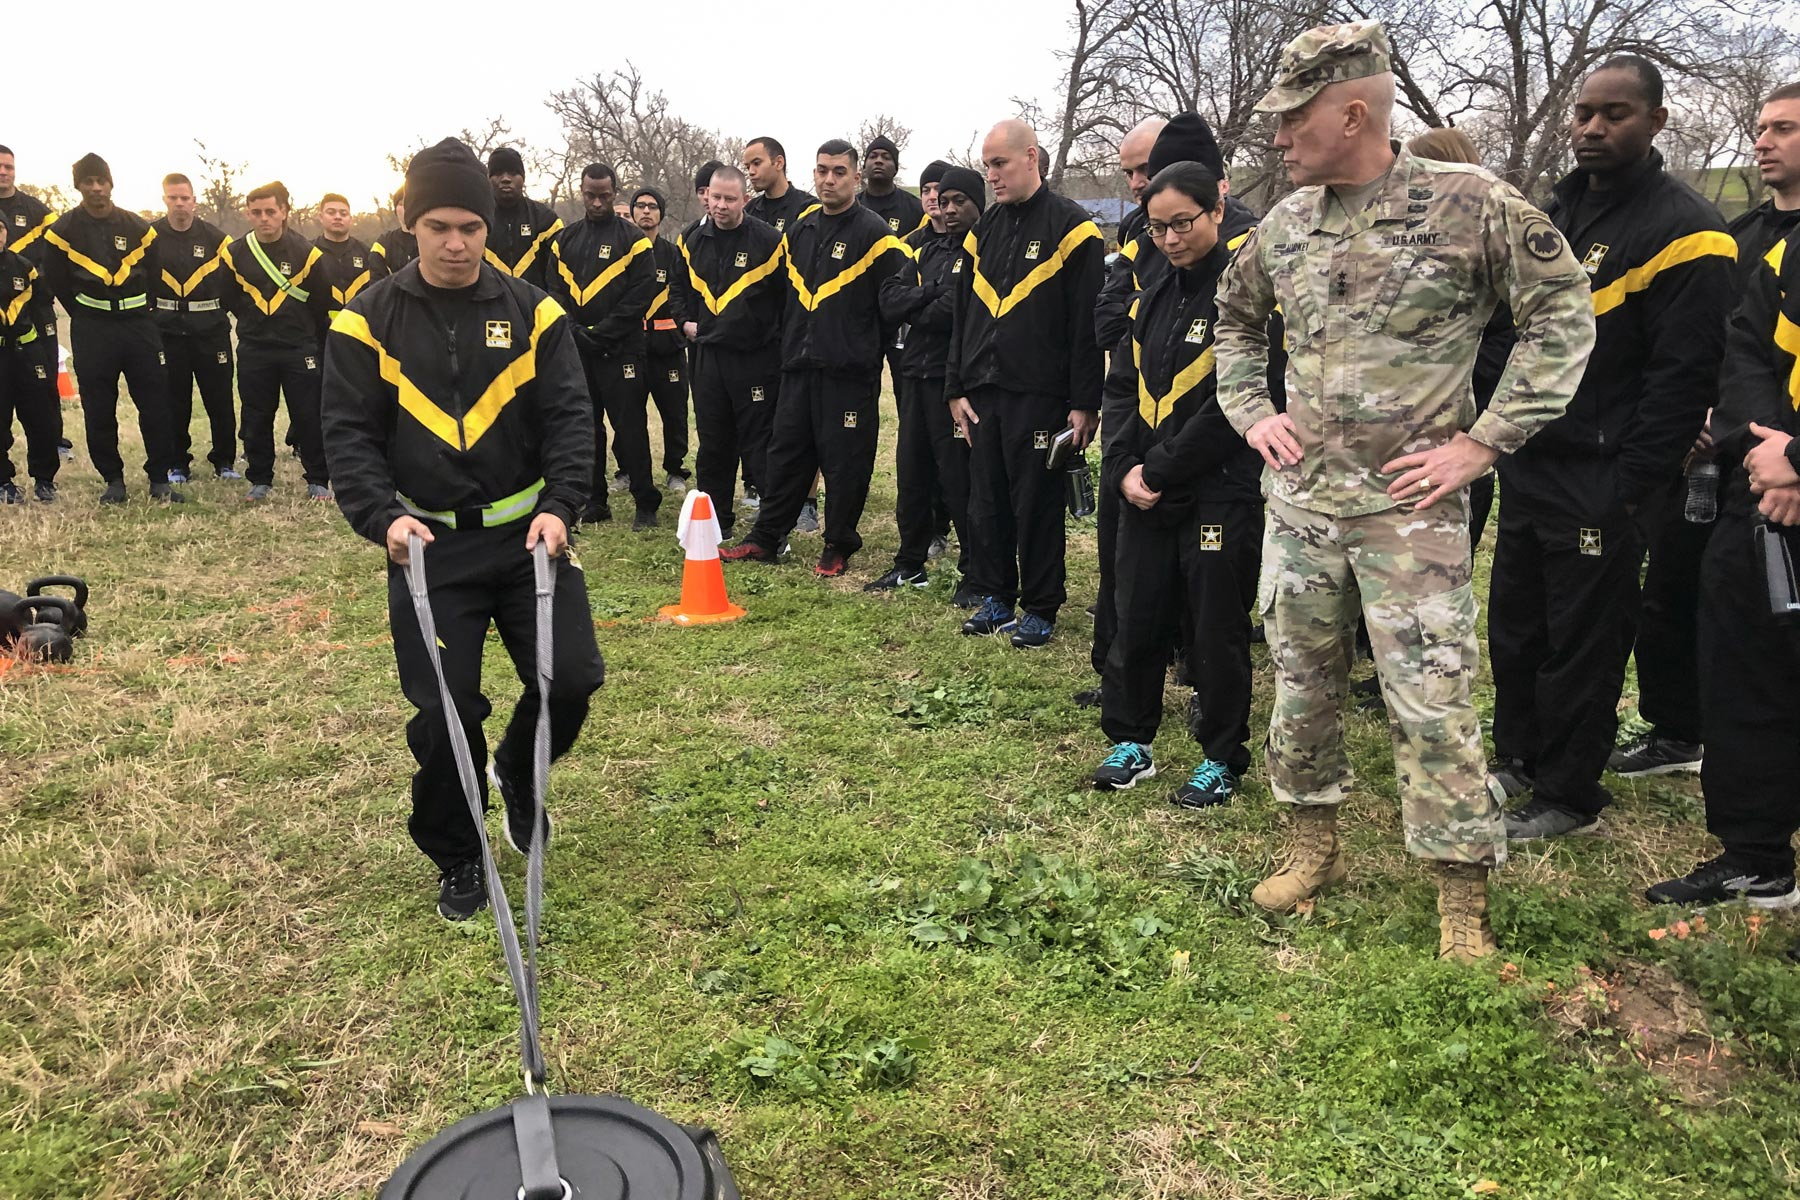 Army 3Star Reserve May Not Be Ready for New Fitness Test by 2020  Militarycom